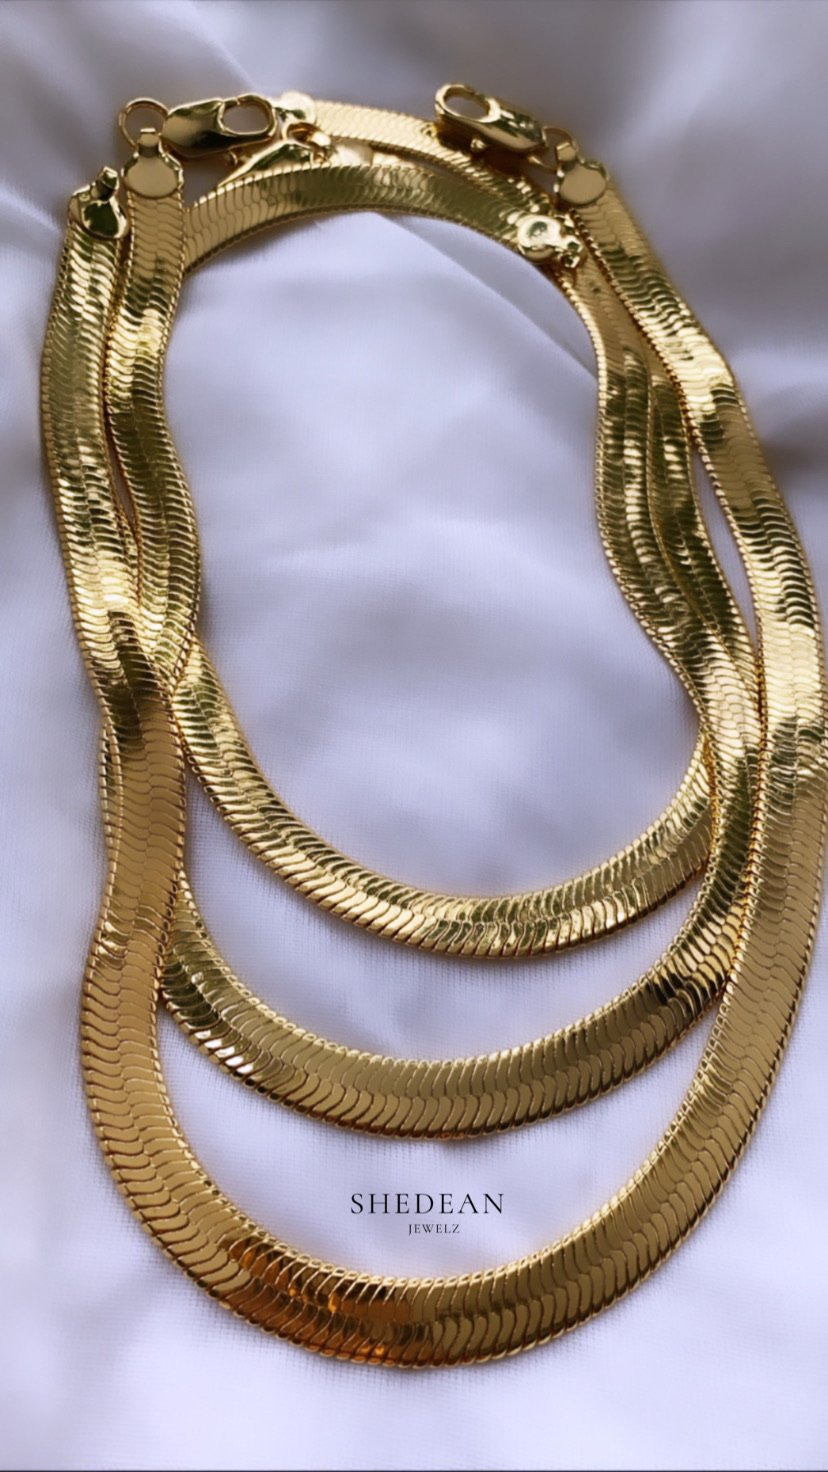 Snake Chain - Shedean Jewelz